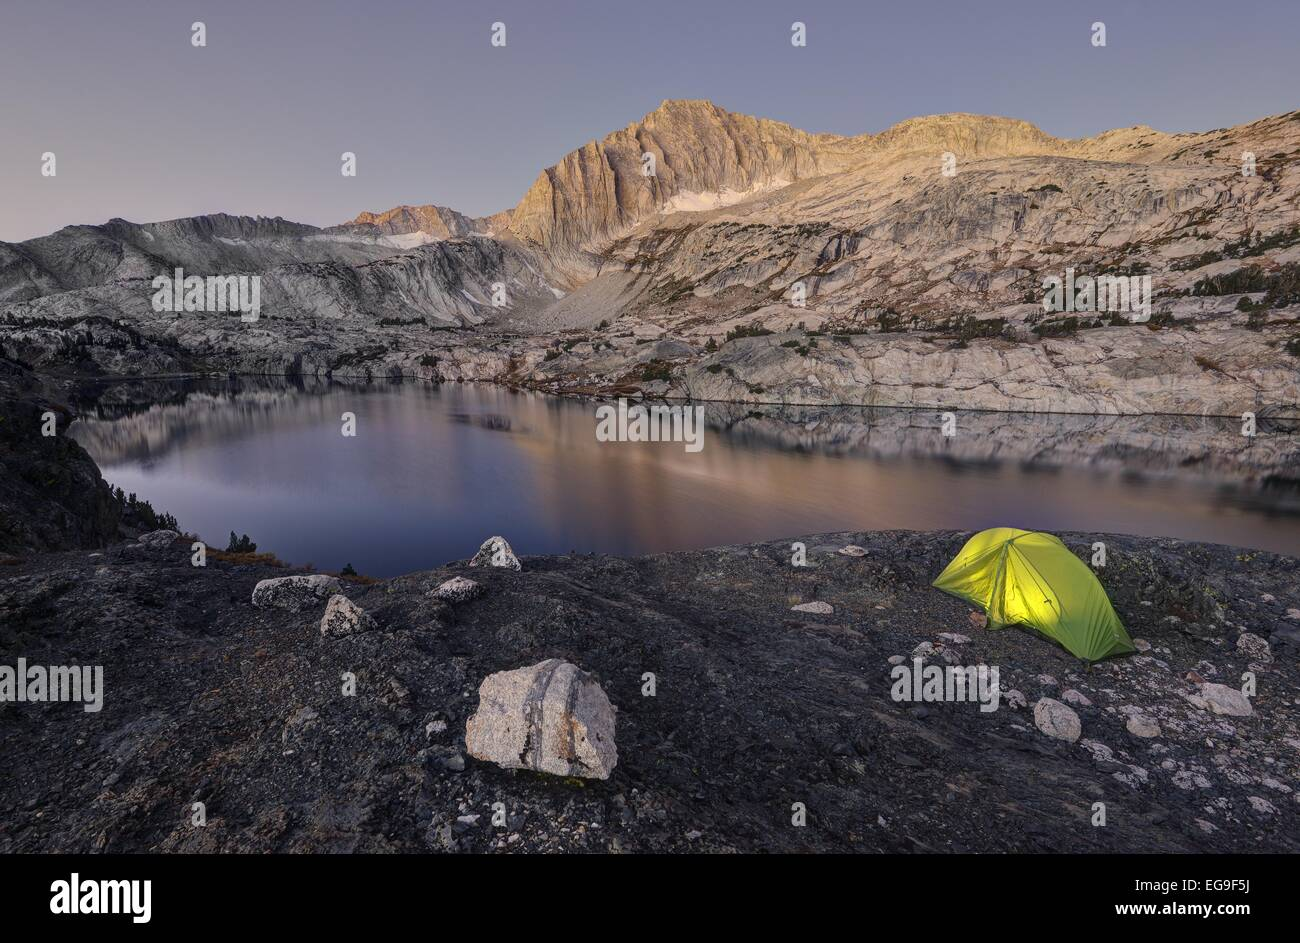 USA, California, Inyo National Forest, Camping by Steelhead Lake - Stock Image